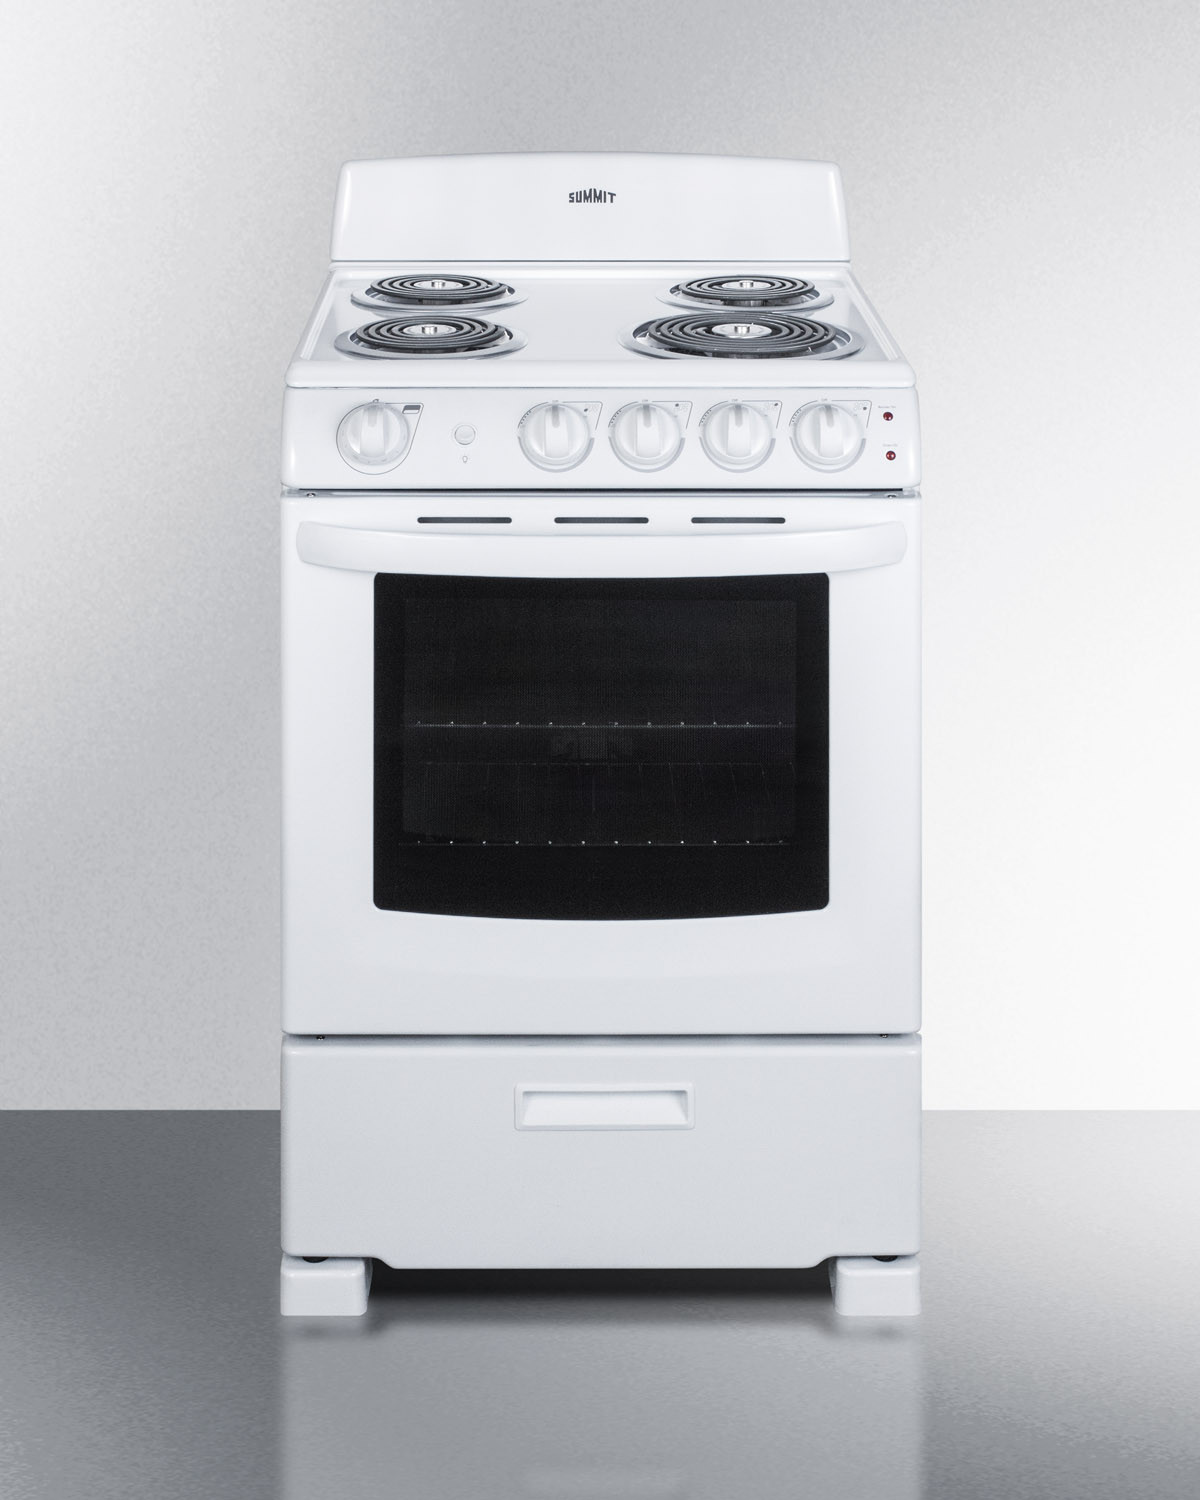 - Summit RE2411W 24 Inch Freestanding Electric Range With Upfront